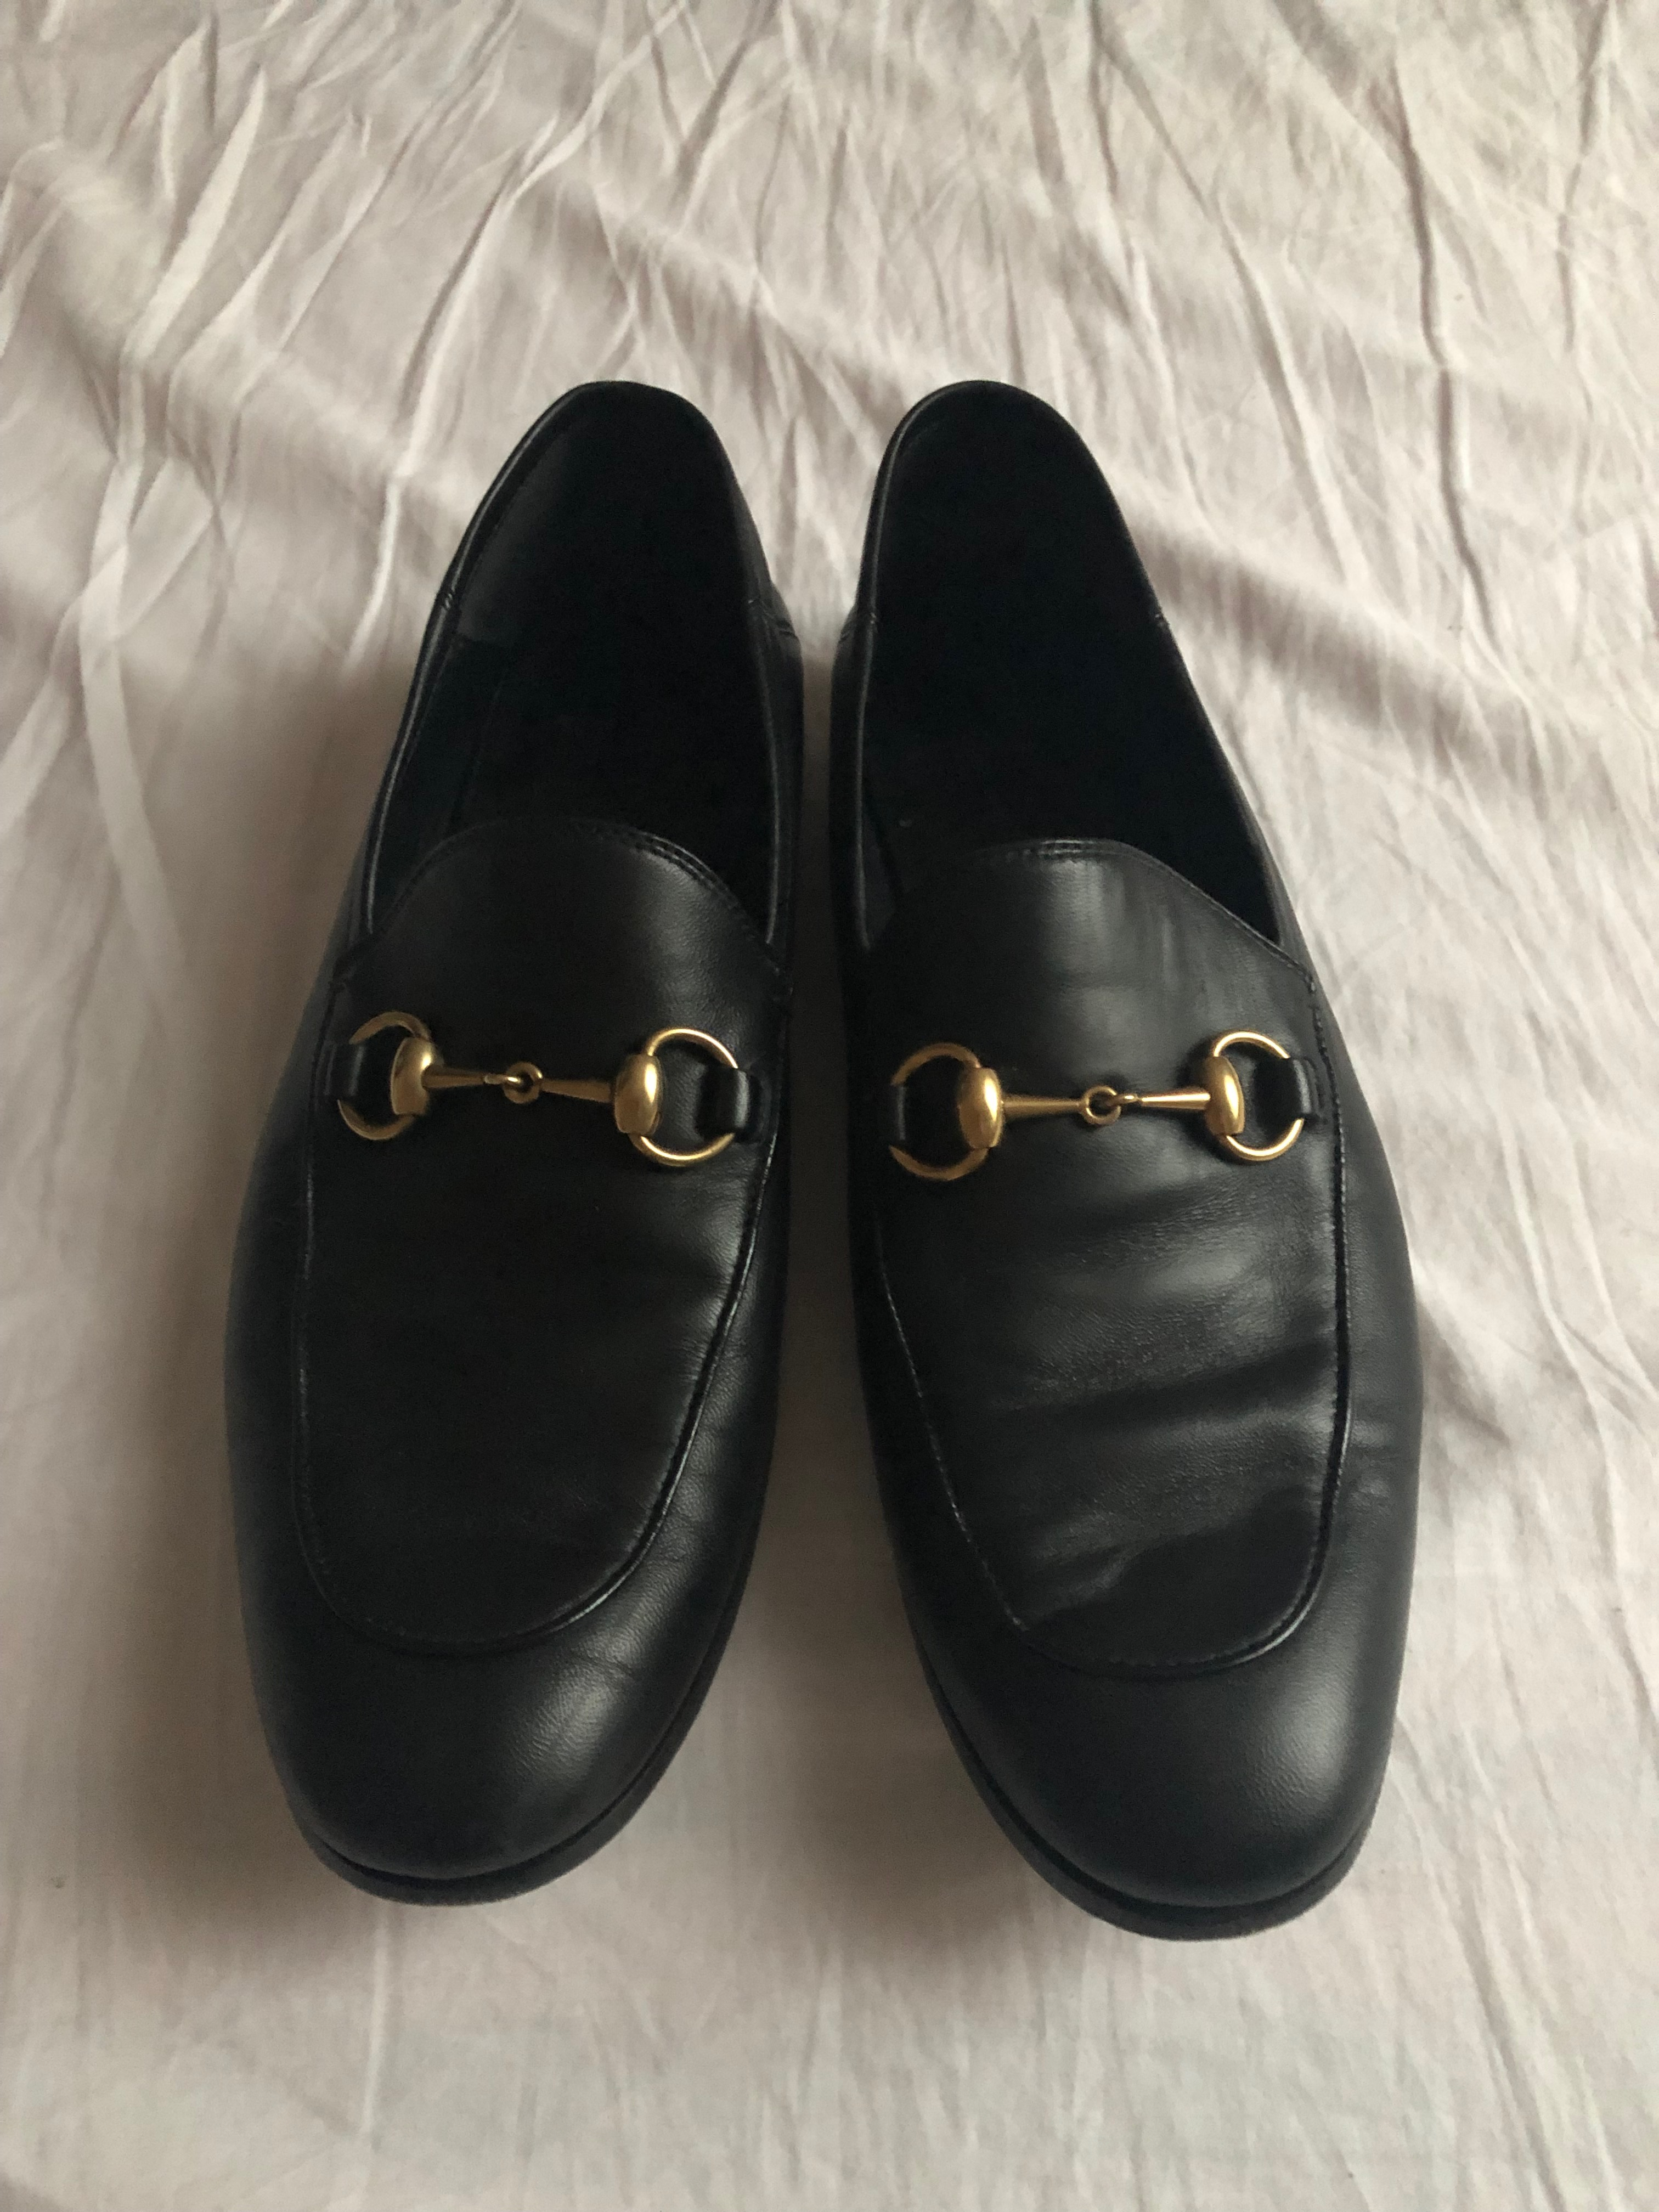 fc3da86231f Gucci Black Jordaan Loafers Size 8.5 - Casual Leather Shoes for Sale ...